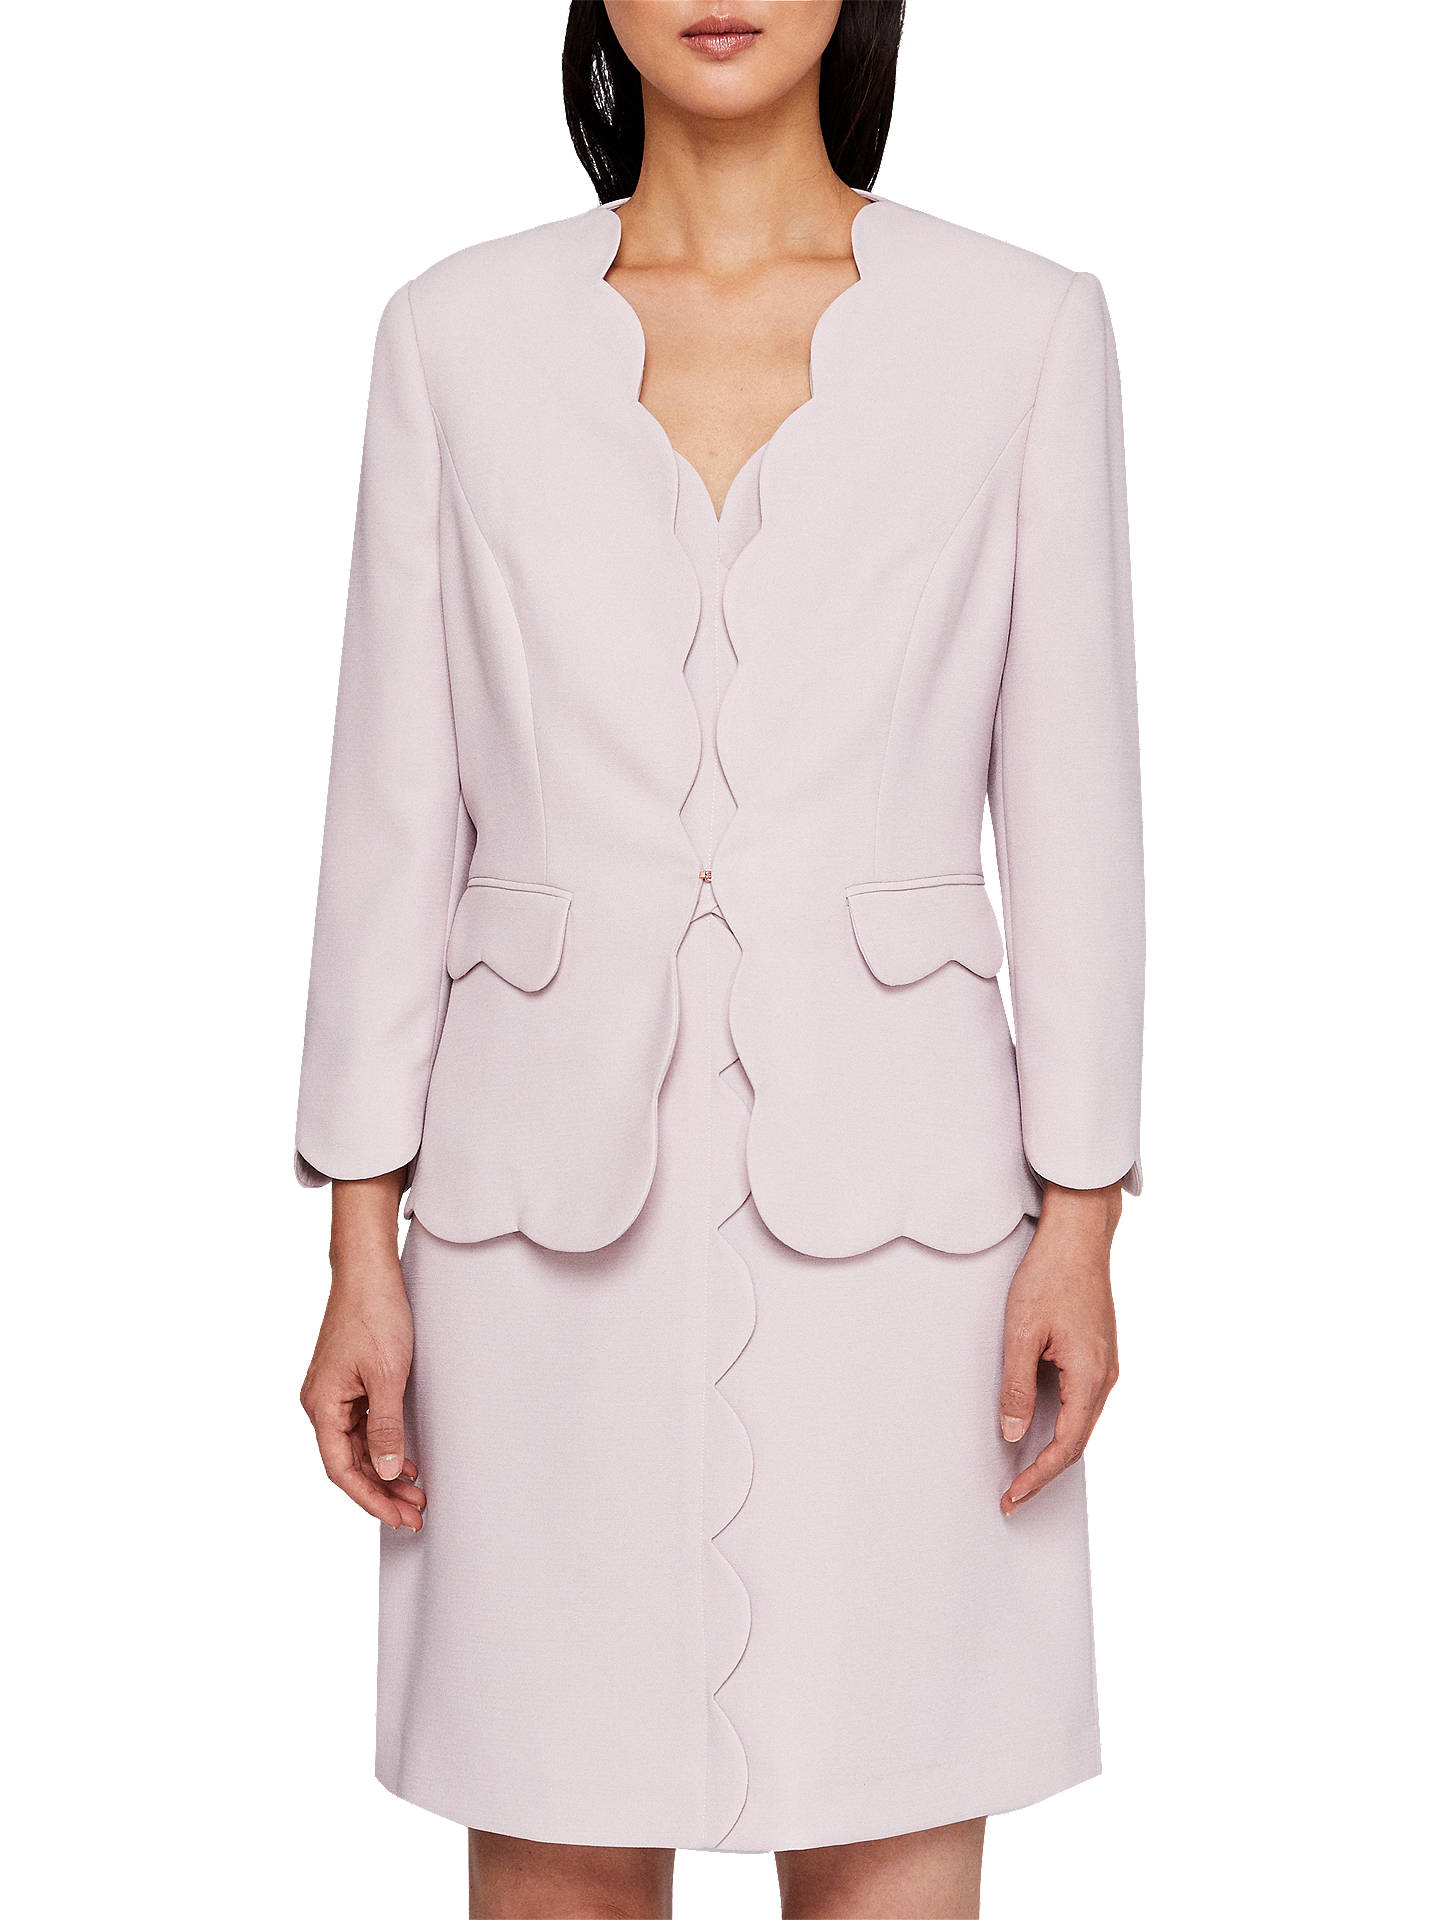 38e01c350c0f1 Ted Baker Rubeye Scallop Edge Cropped Blazer Jacket at John Lewis ...